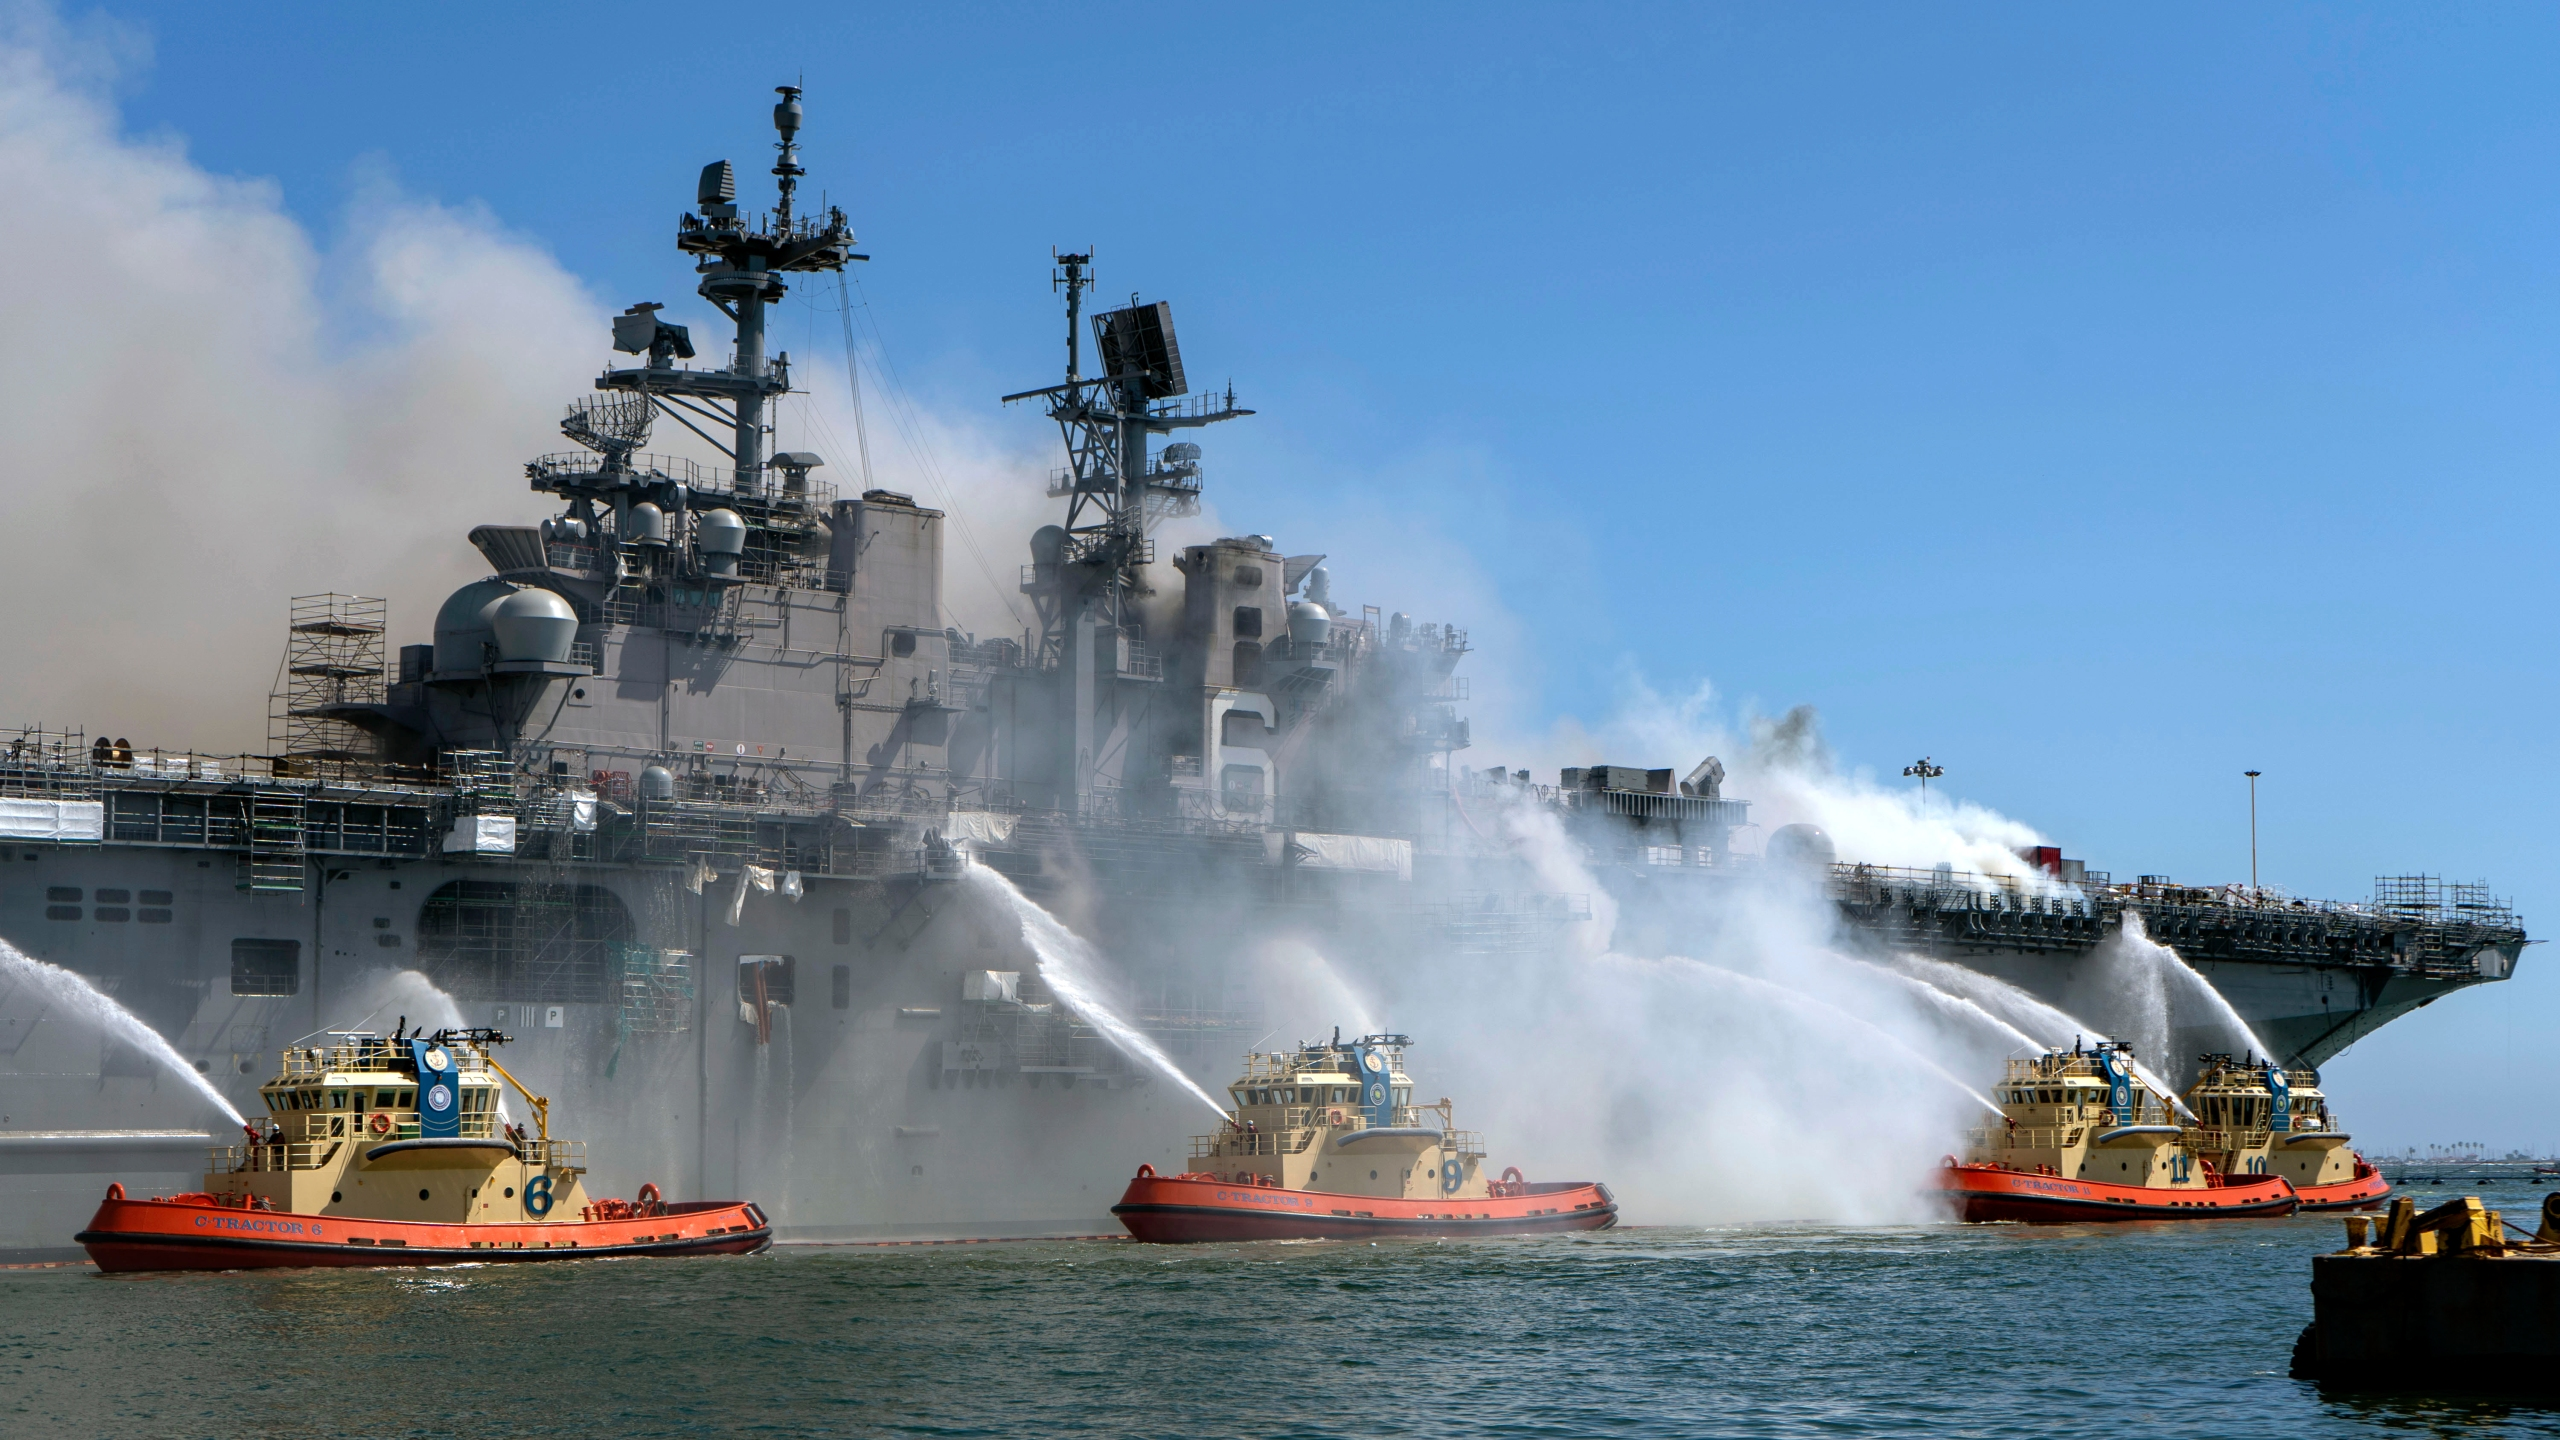 In this U.S. Navy released handout, sailors and federal firefighters combat a fire onboard USS Bonhomme Richard at Naval Base San Diego on July 12, 2020. (U.S. Navy photo by Mass Communication Specialist 3rd Class Christina Ross)